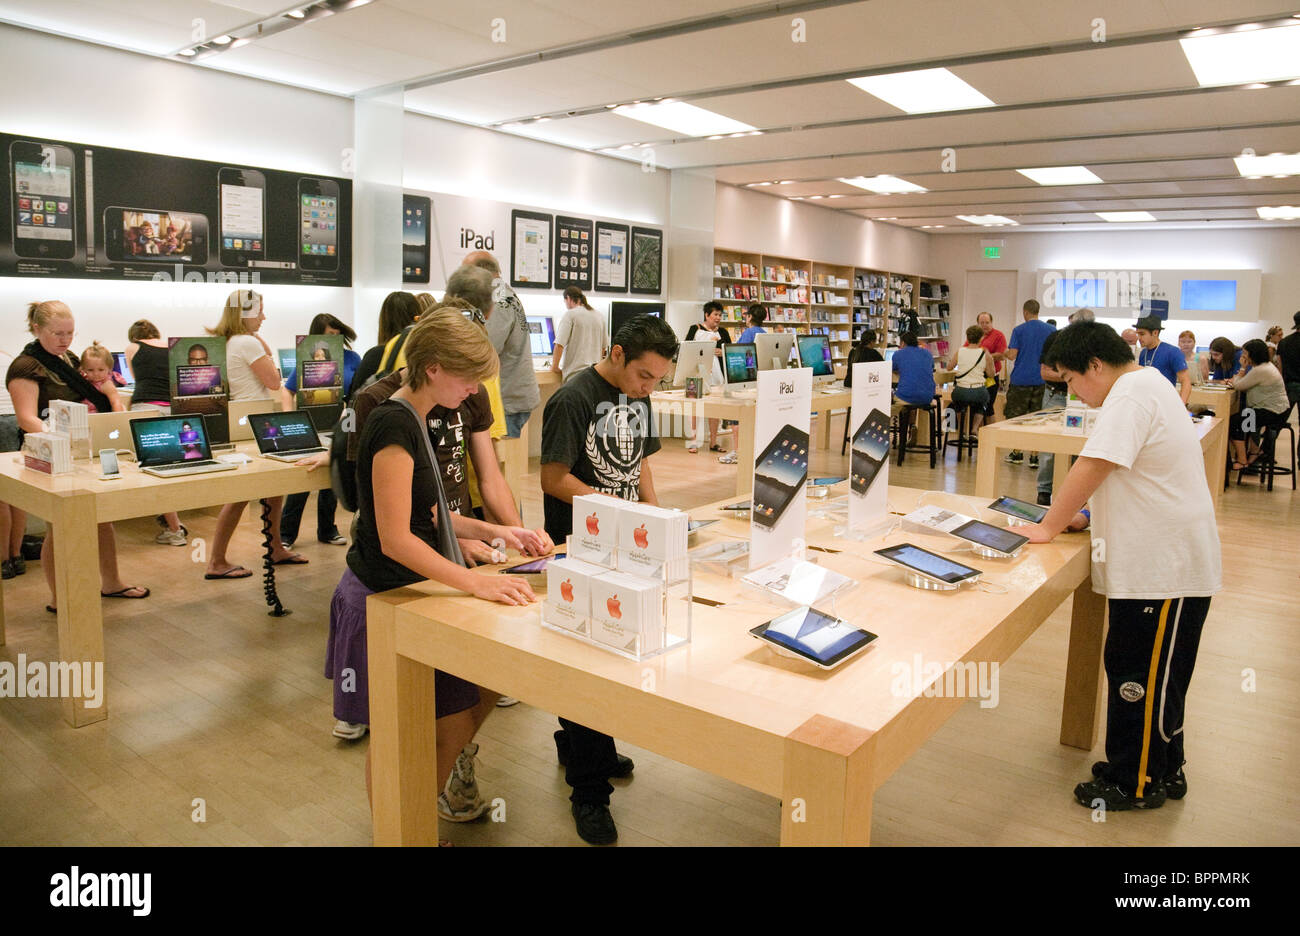 Apple Store Fashion Mall Las Vegas